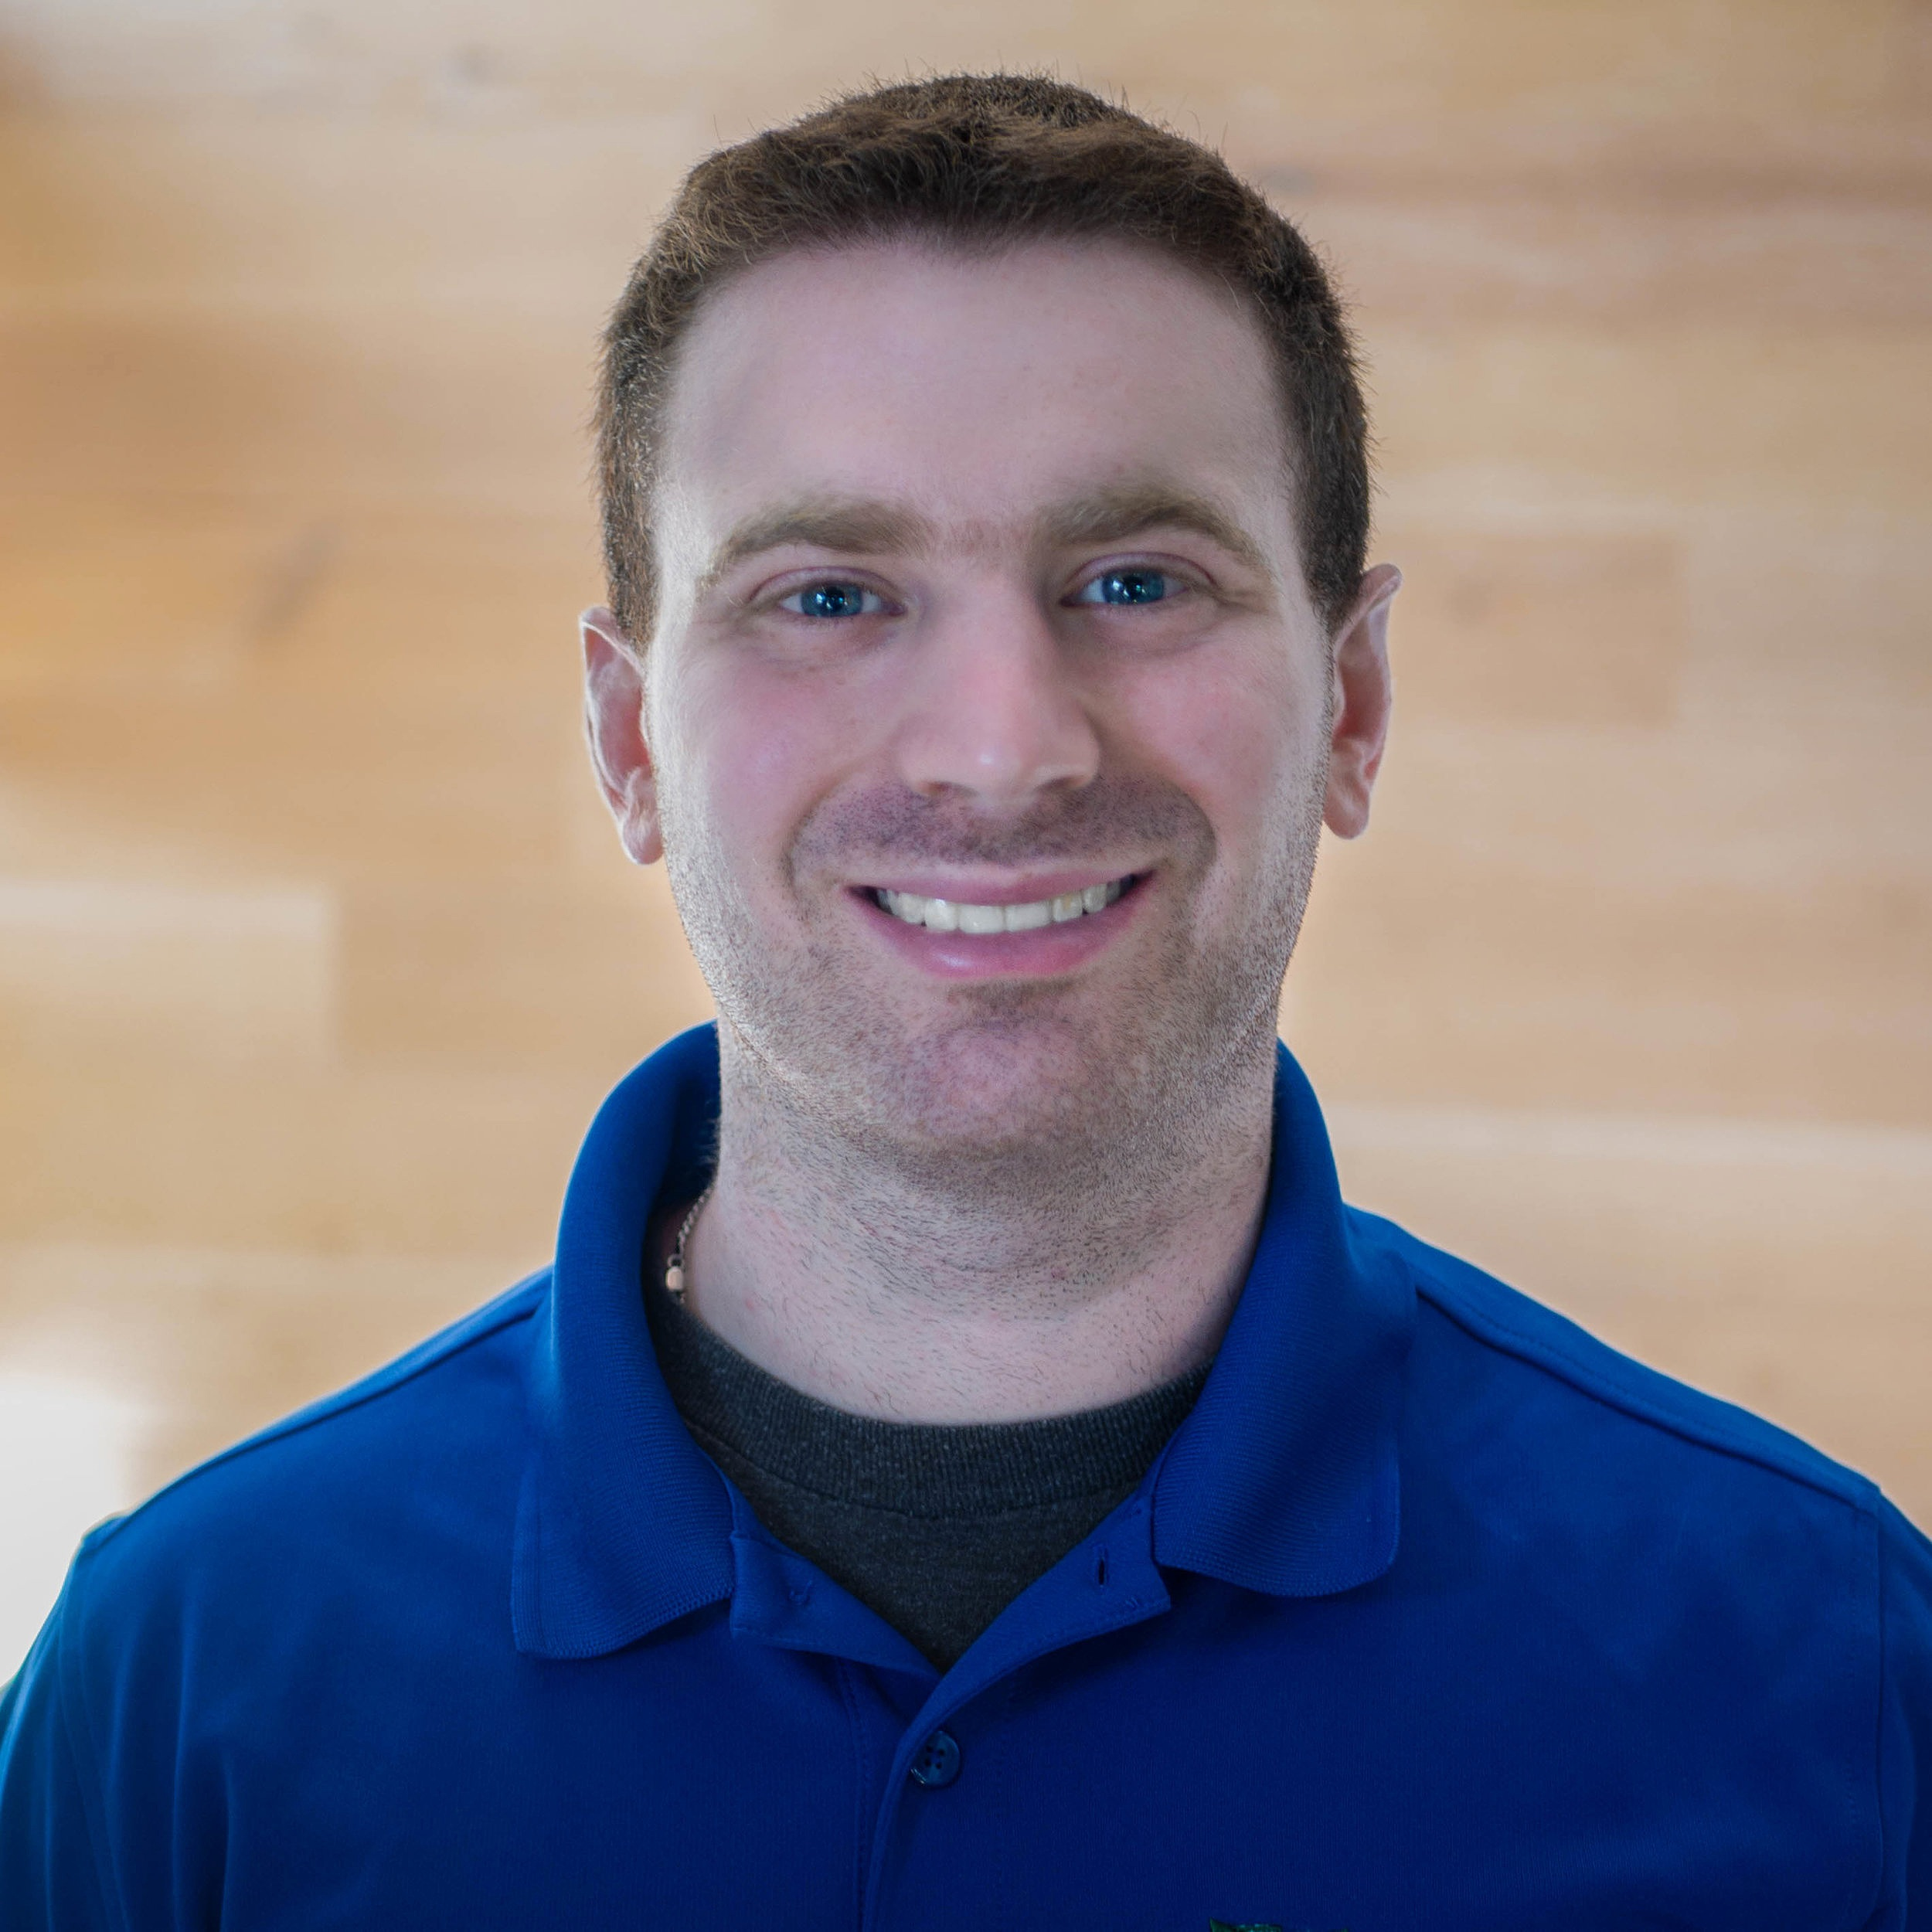 Tyler Rosenberg is a Physical Therapist at Metro Physical Therapy Selden